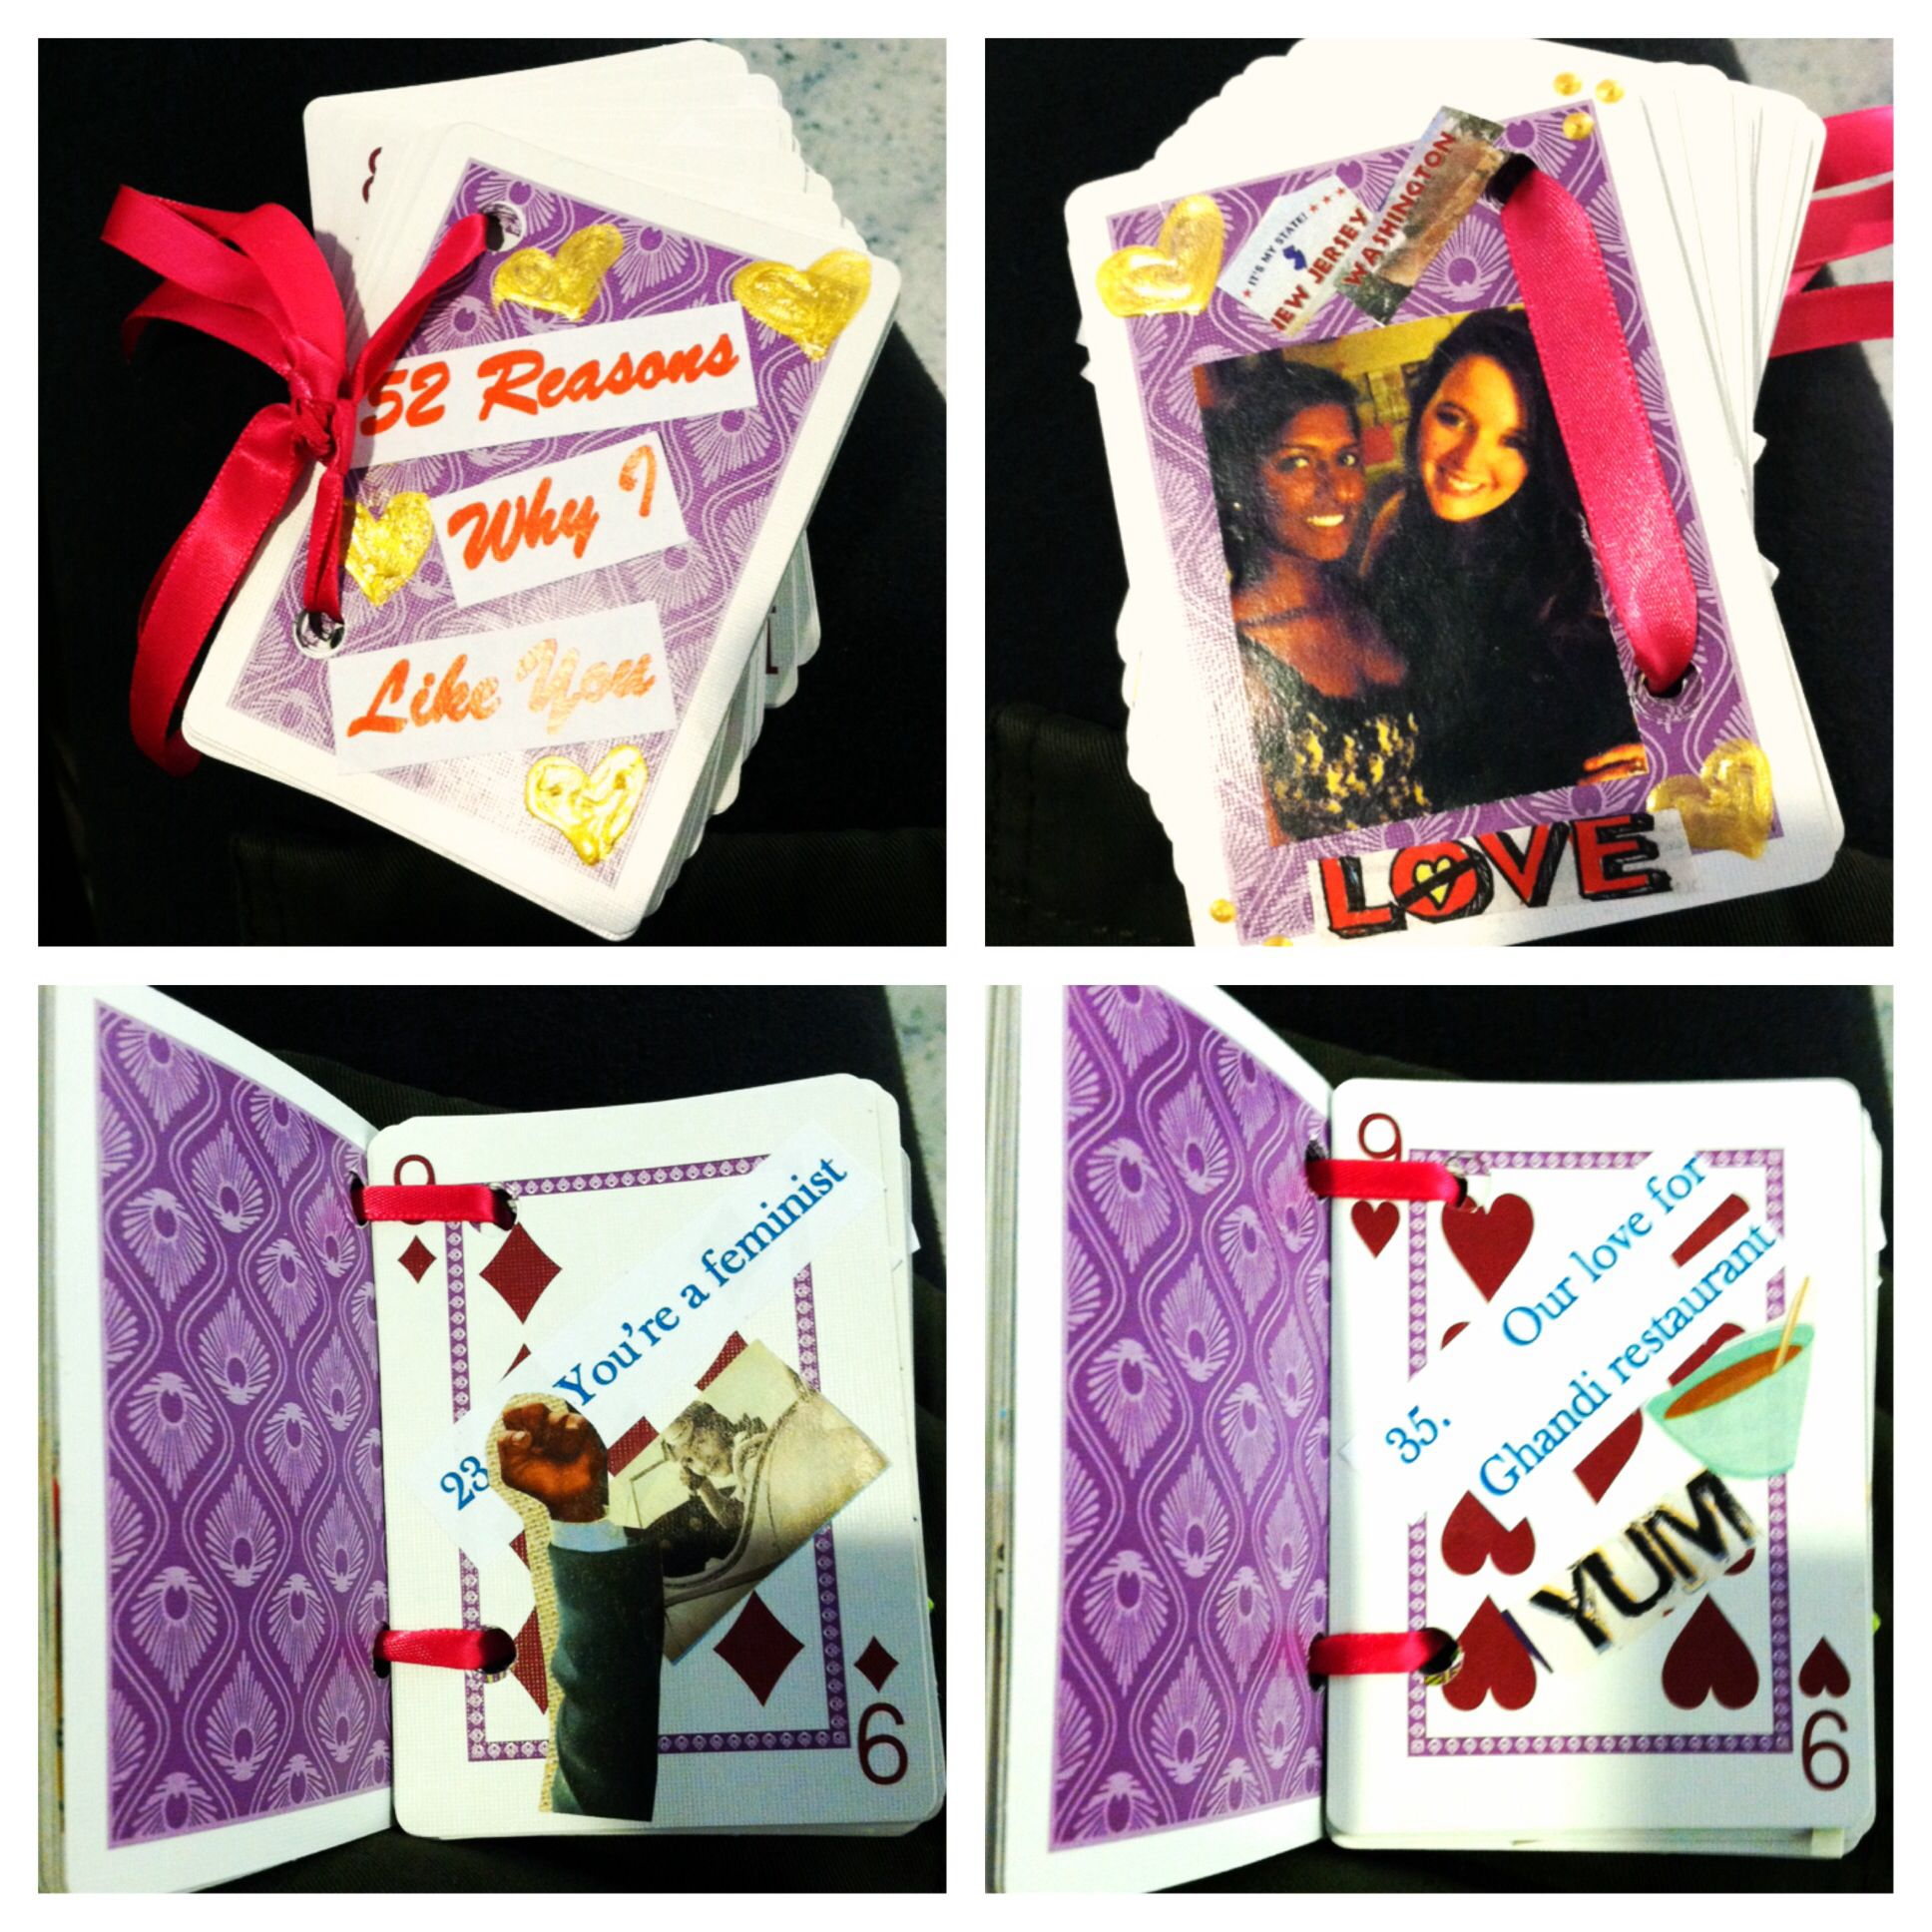 Best friend birthday gift already did it diy crafts Easy gift ideas for friends